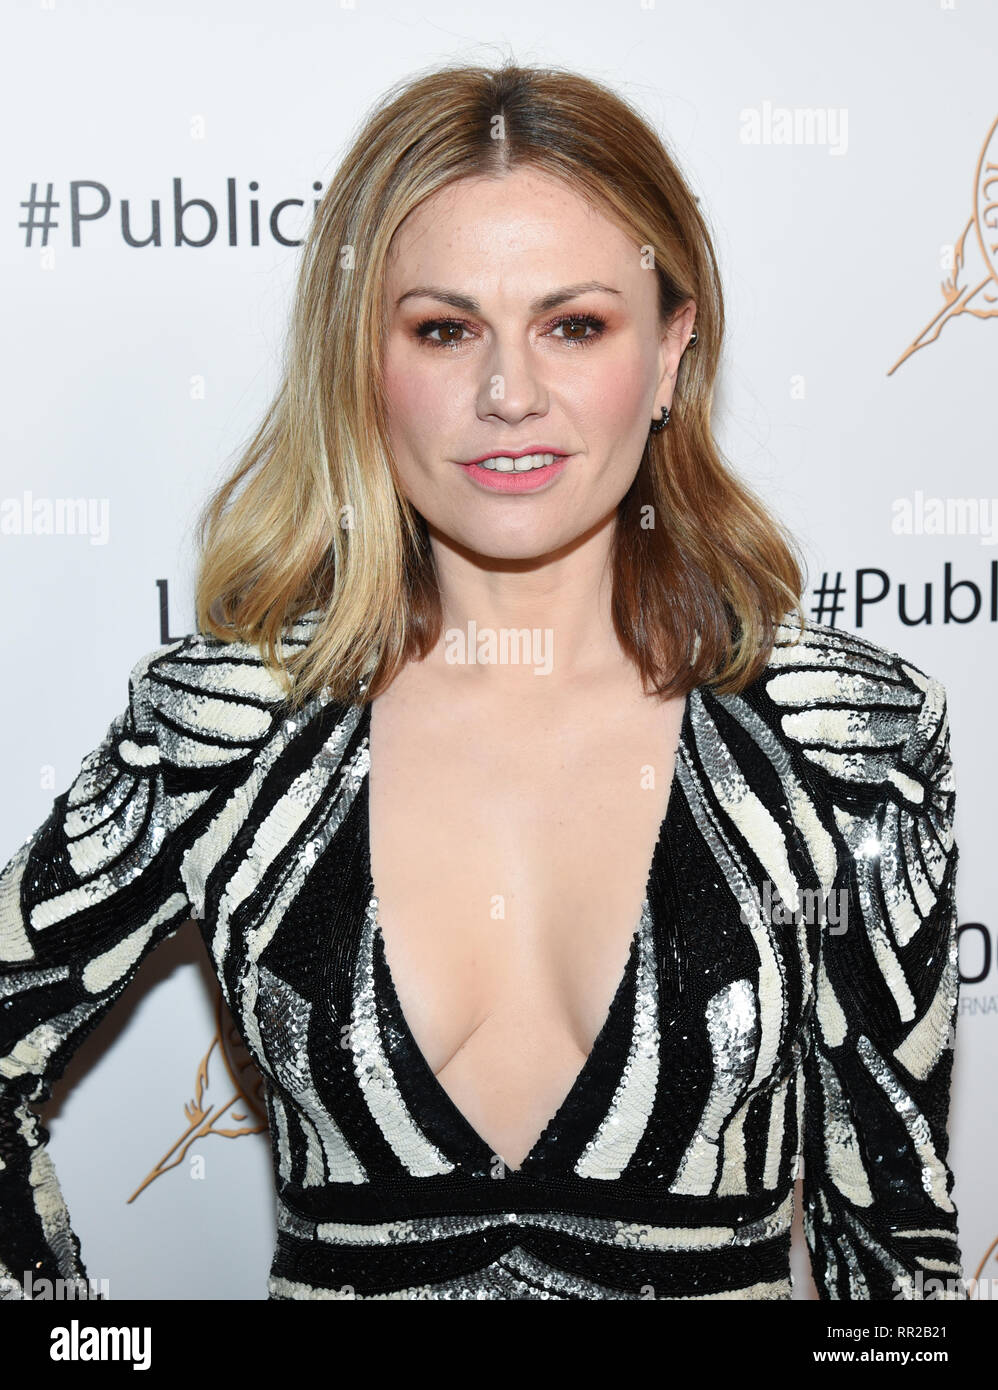 ANNA PAQUIN attends the 56th Annual ICG Publicist Awards at The Beverly Hilton Hotel in Beverly Hills, California. 22nd Feb, 2019. Credit: Billy Bennight/ZUMA Wire/Alamy Live News - Stock Image